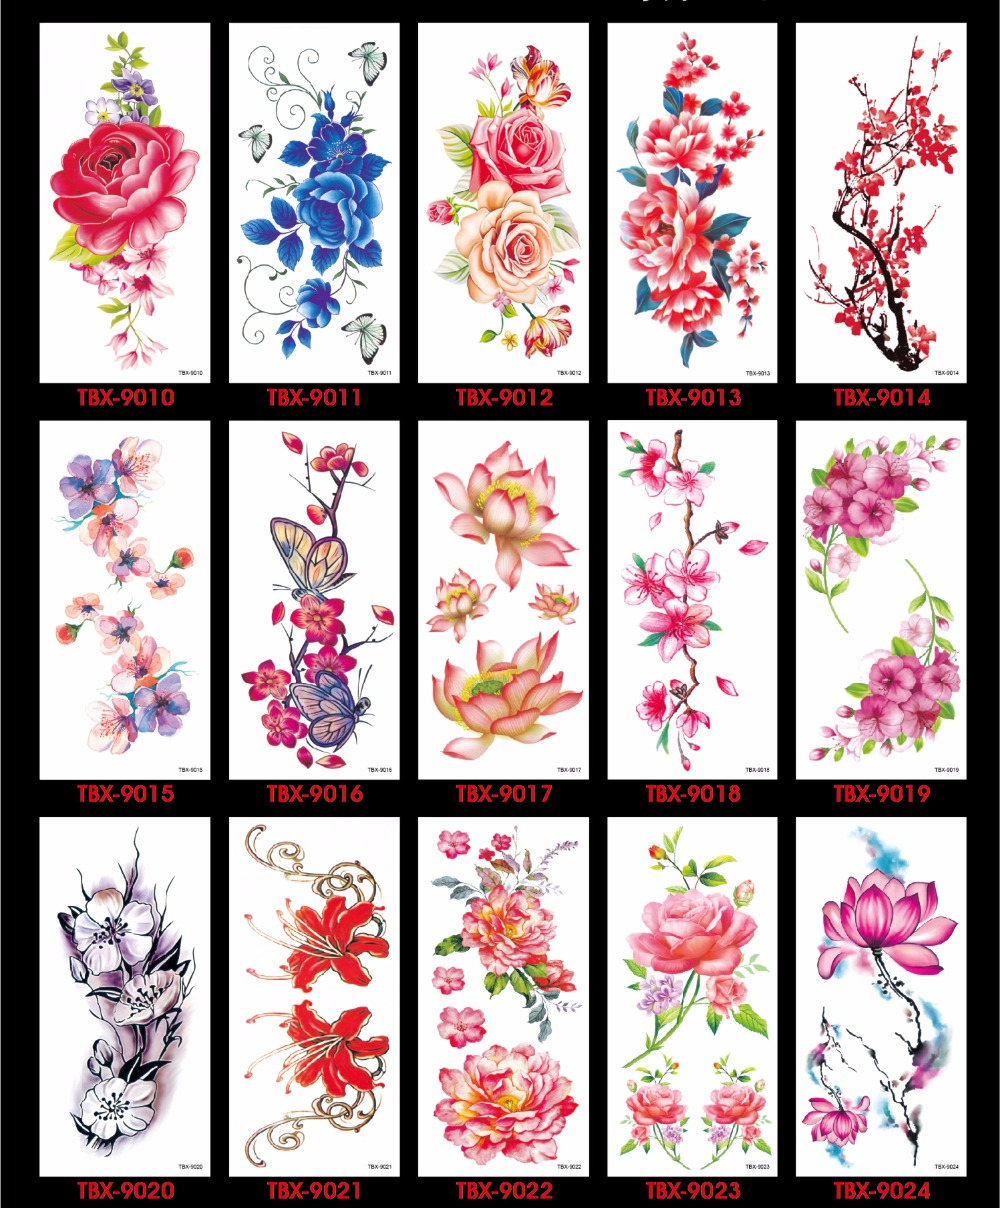 17 Waterproof temporary tattoos stickers sexy romantic dark rose flowers flash fenna tattoos fake body art Tattoo sleeve 12